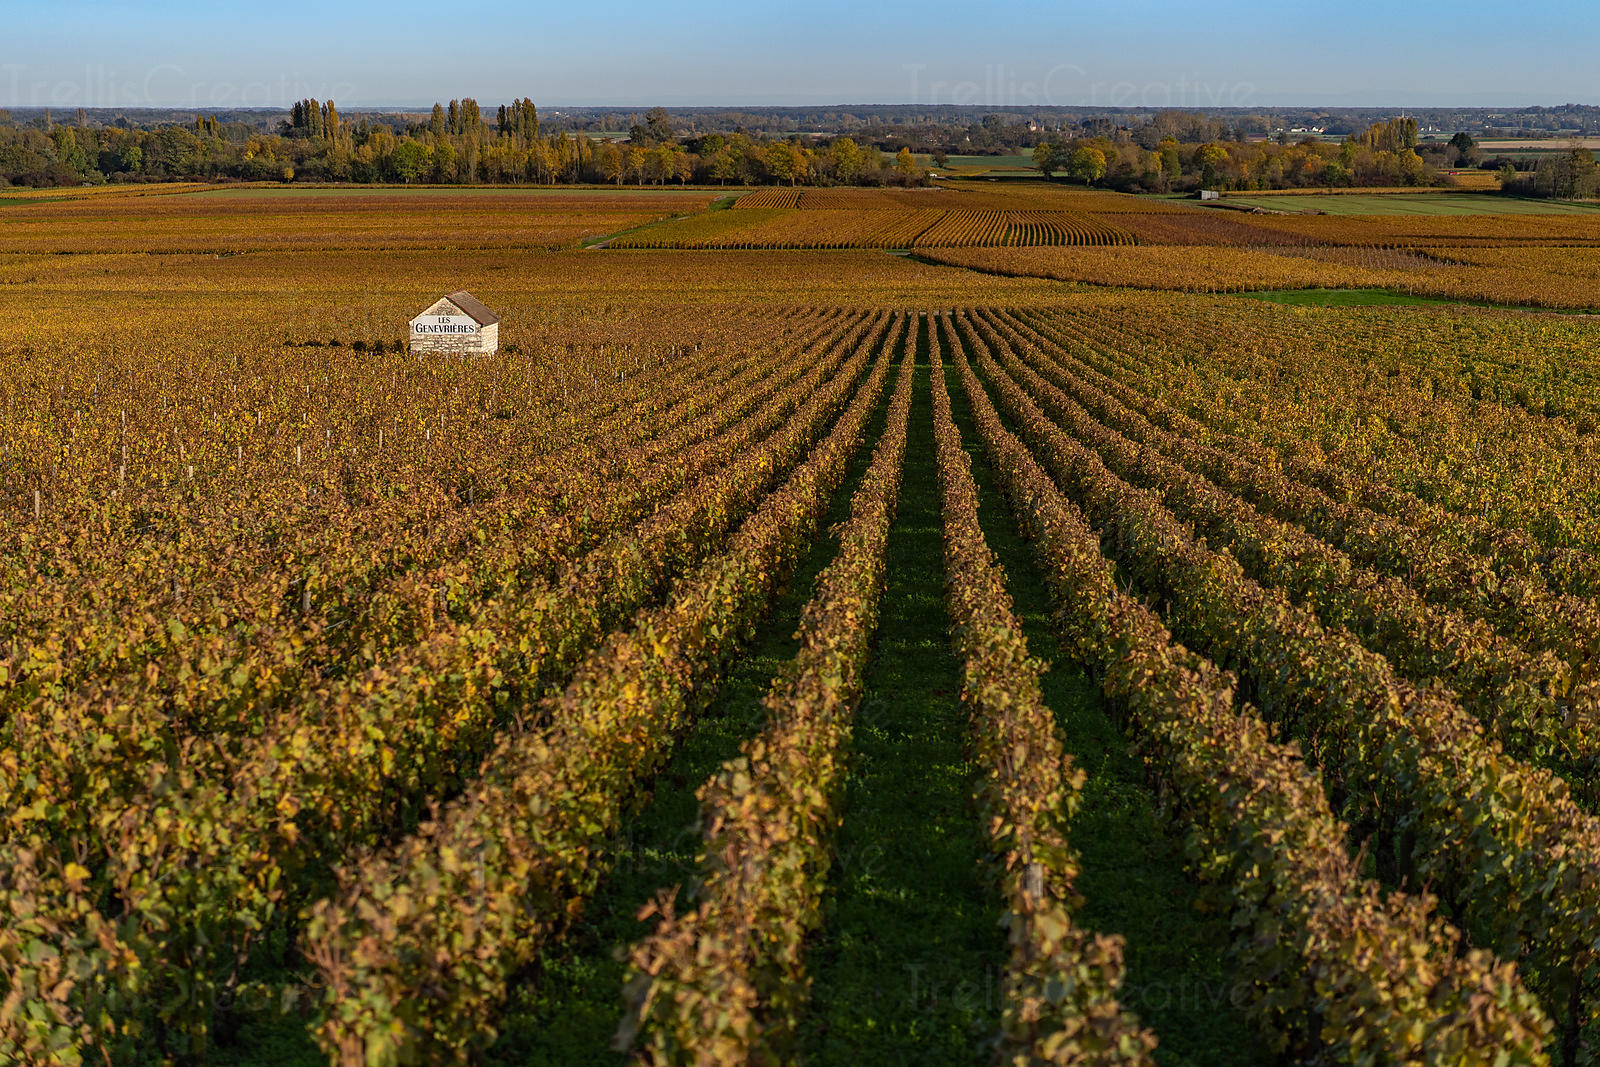 The beautiful vineyards of Meursault in Burgundy, France